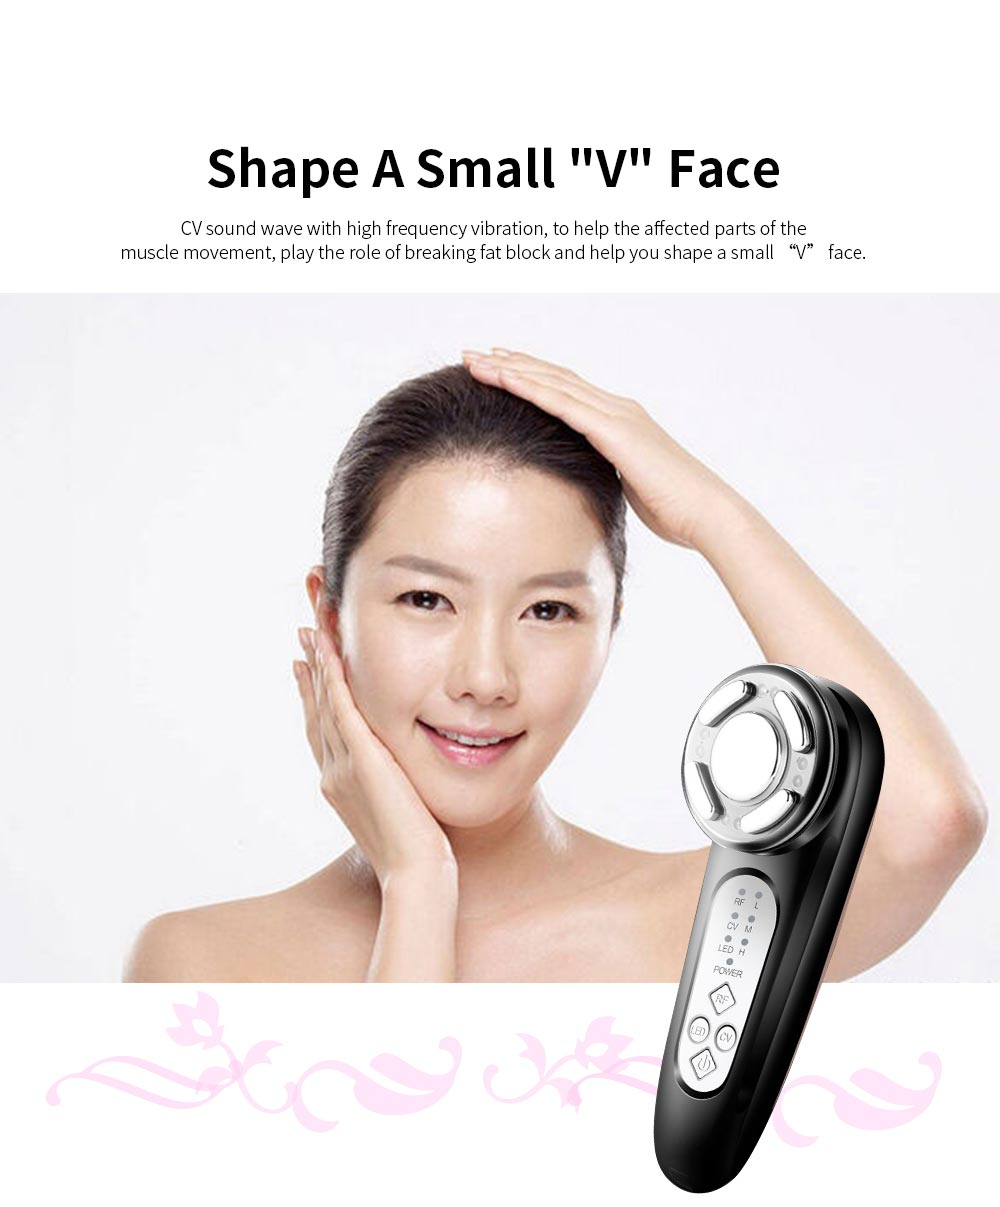 Ultrasonic Skin Tightening Machine Facial Body Massager Portable Beauty Equipment with LED Color for Wrinkle Remover Anti-aging 2